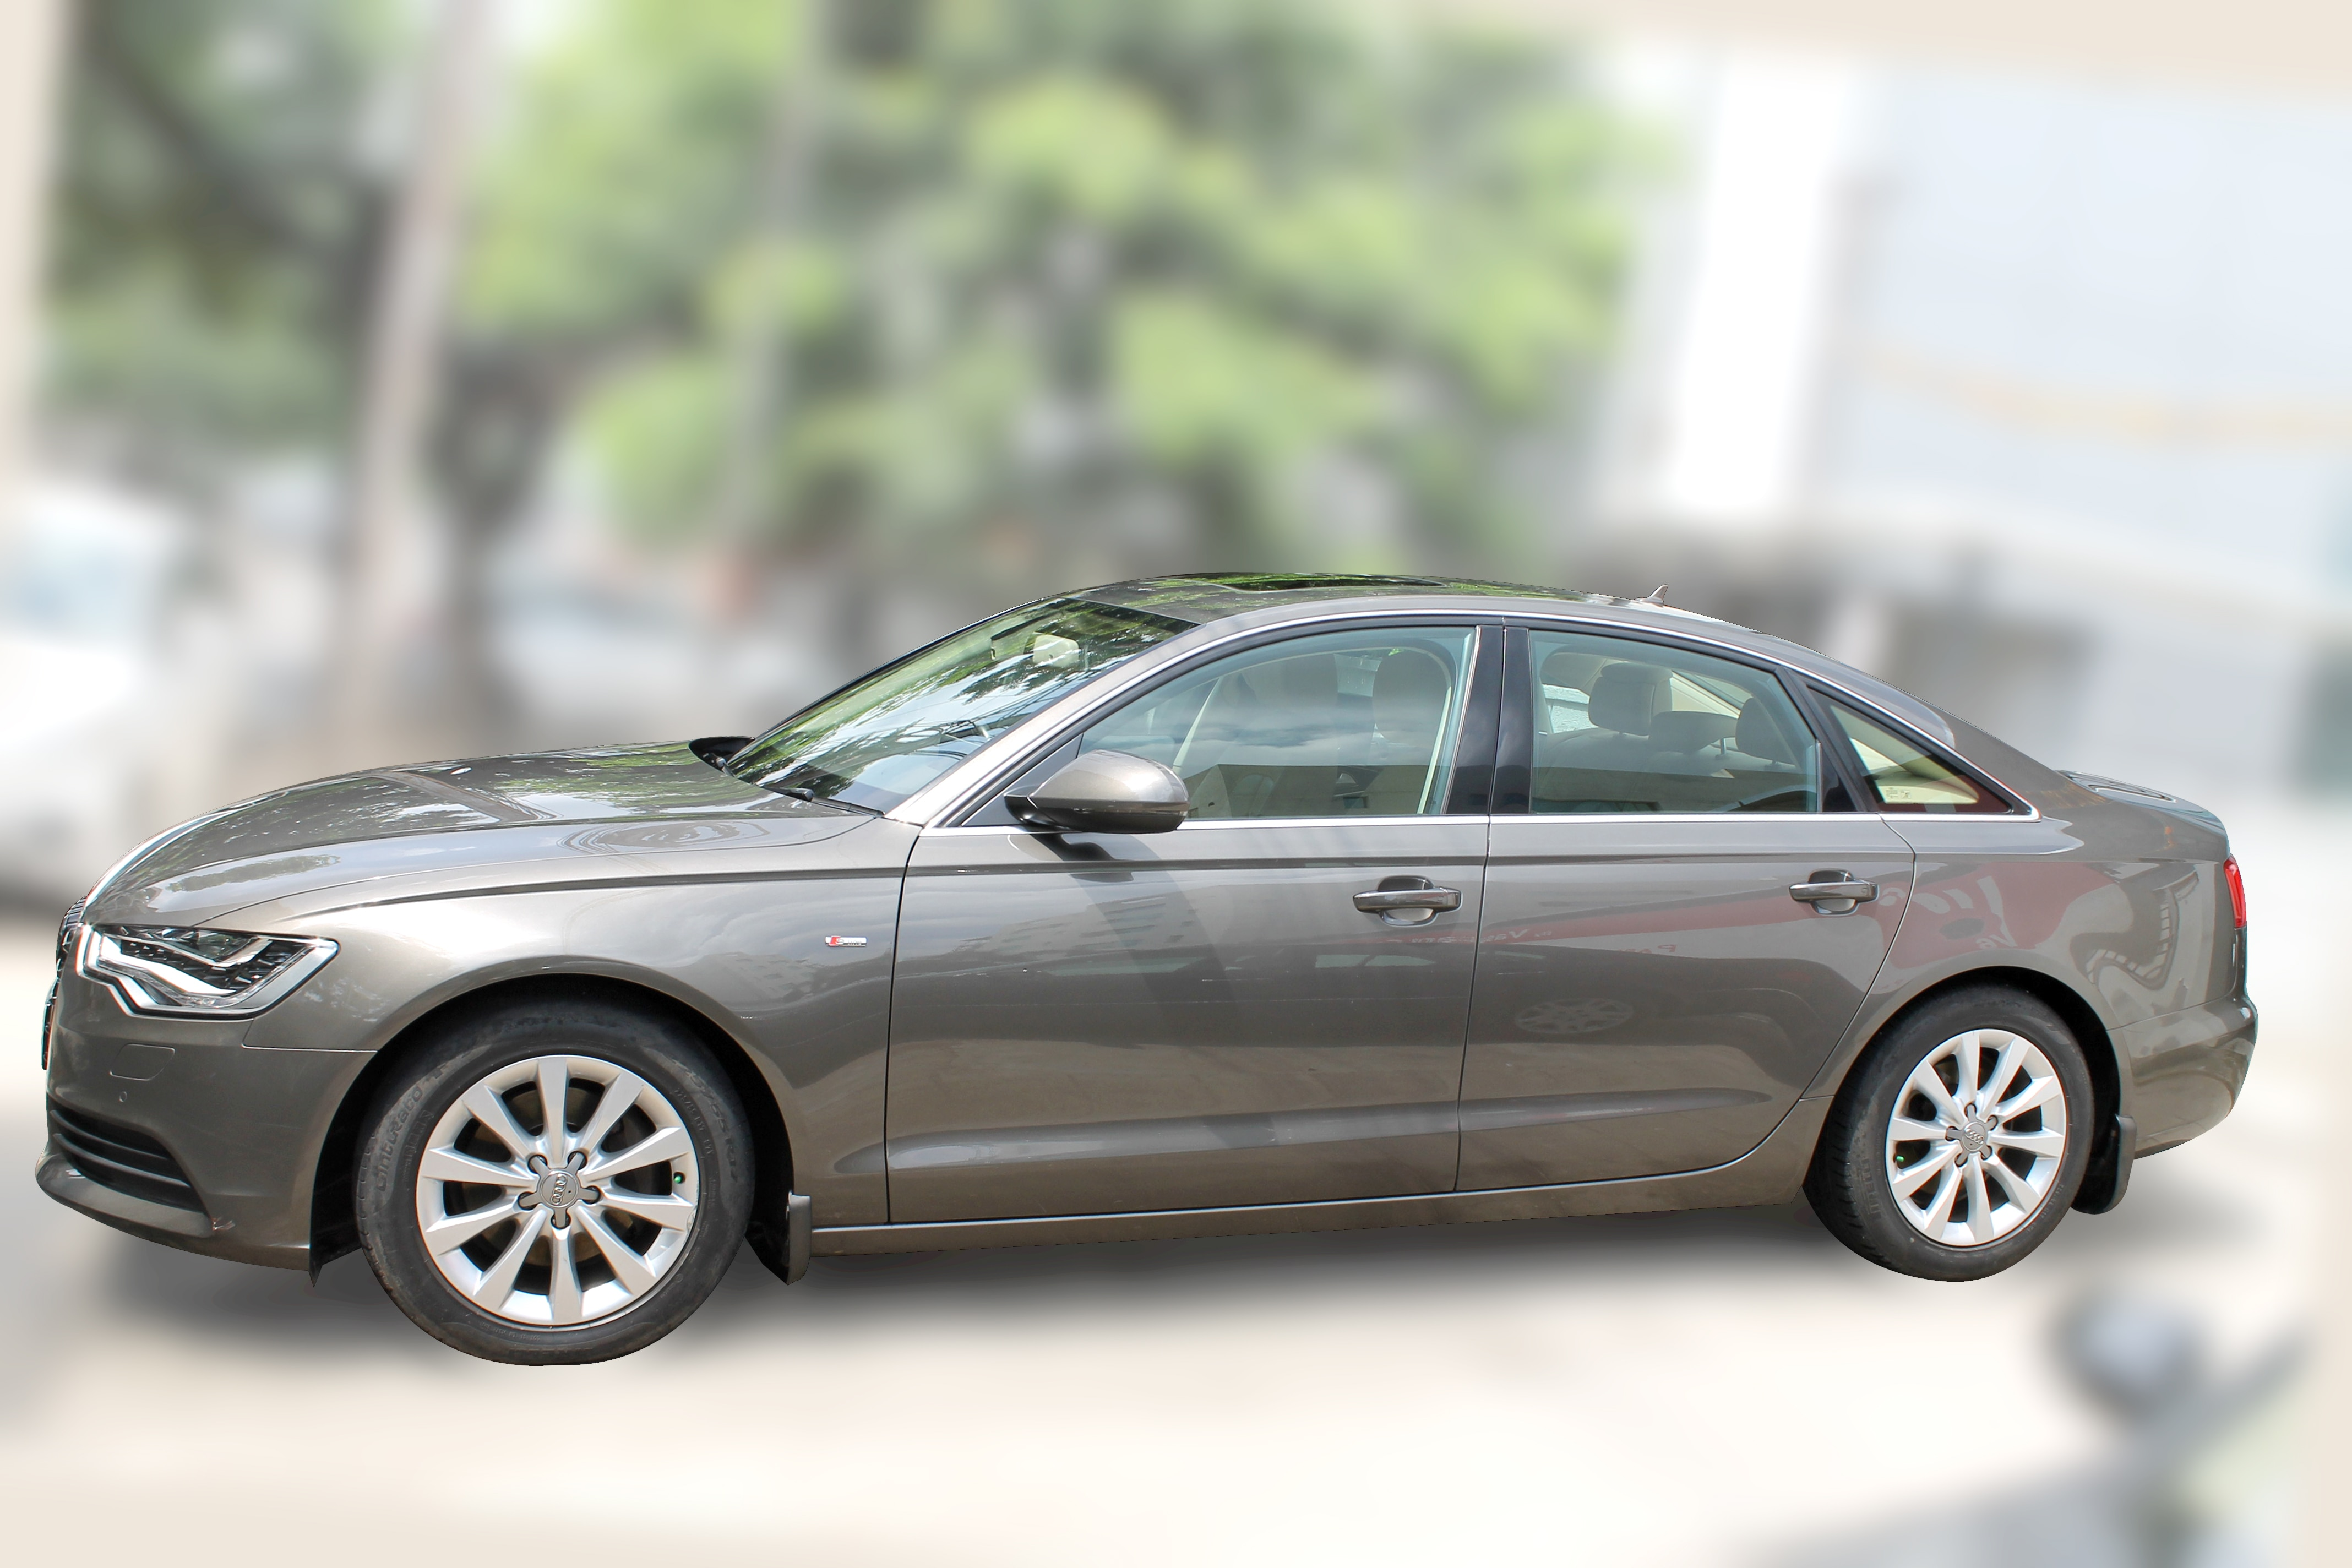 AUDI A6 2.0 TDI BSIV (DAKOTA GREY METALLIC COLOR, DIESEL) 2014 model done only 49, 000km in absolute mint condition... buy now and get one year service pack from us. For further info call 7569696666. visit us @ www.vasantmotors.in